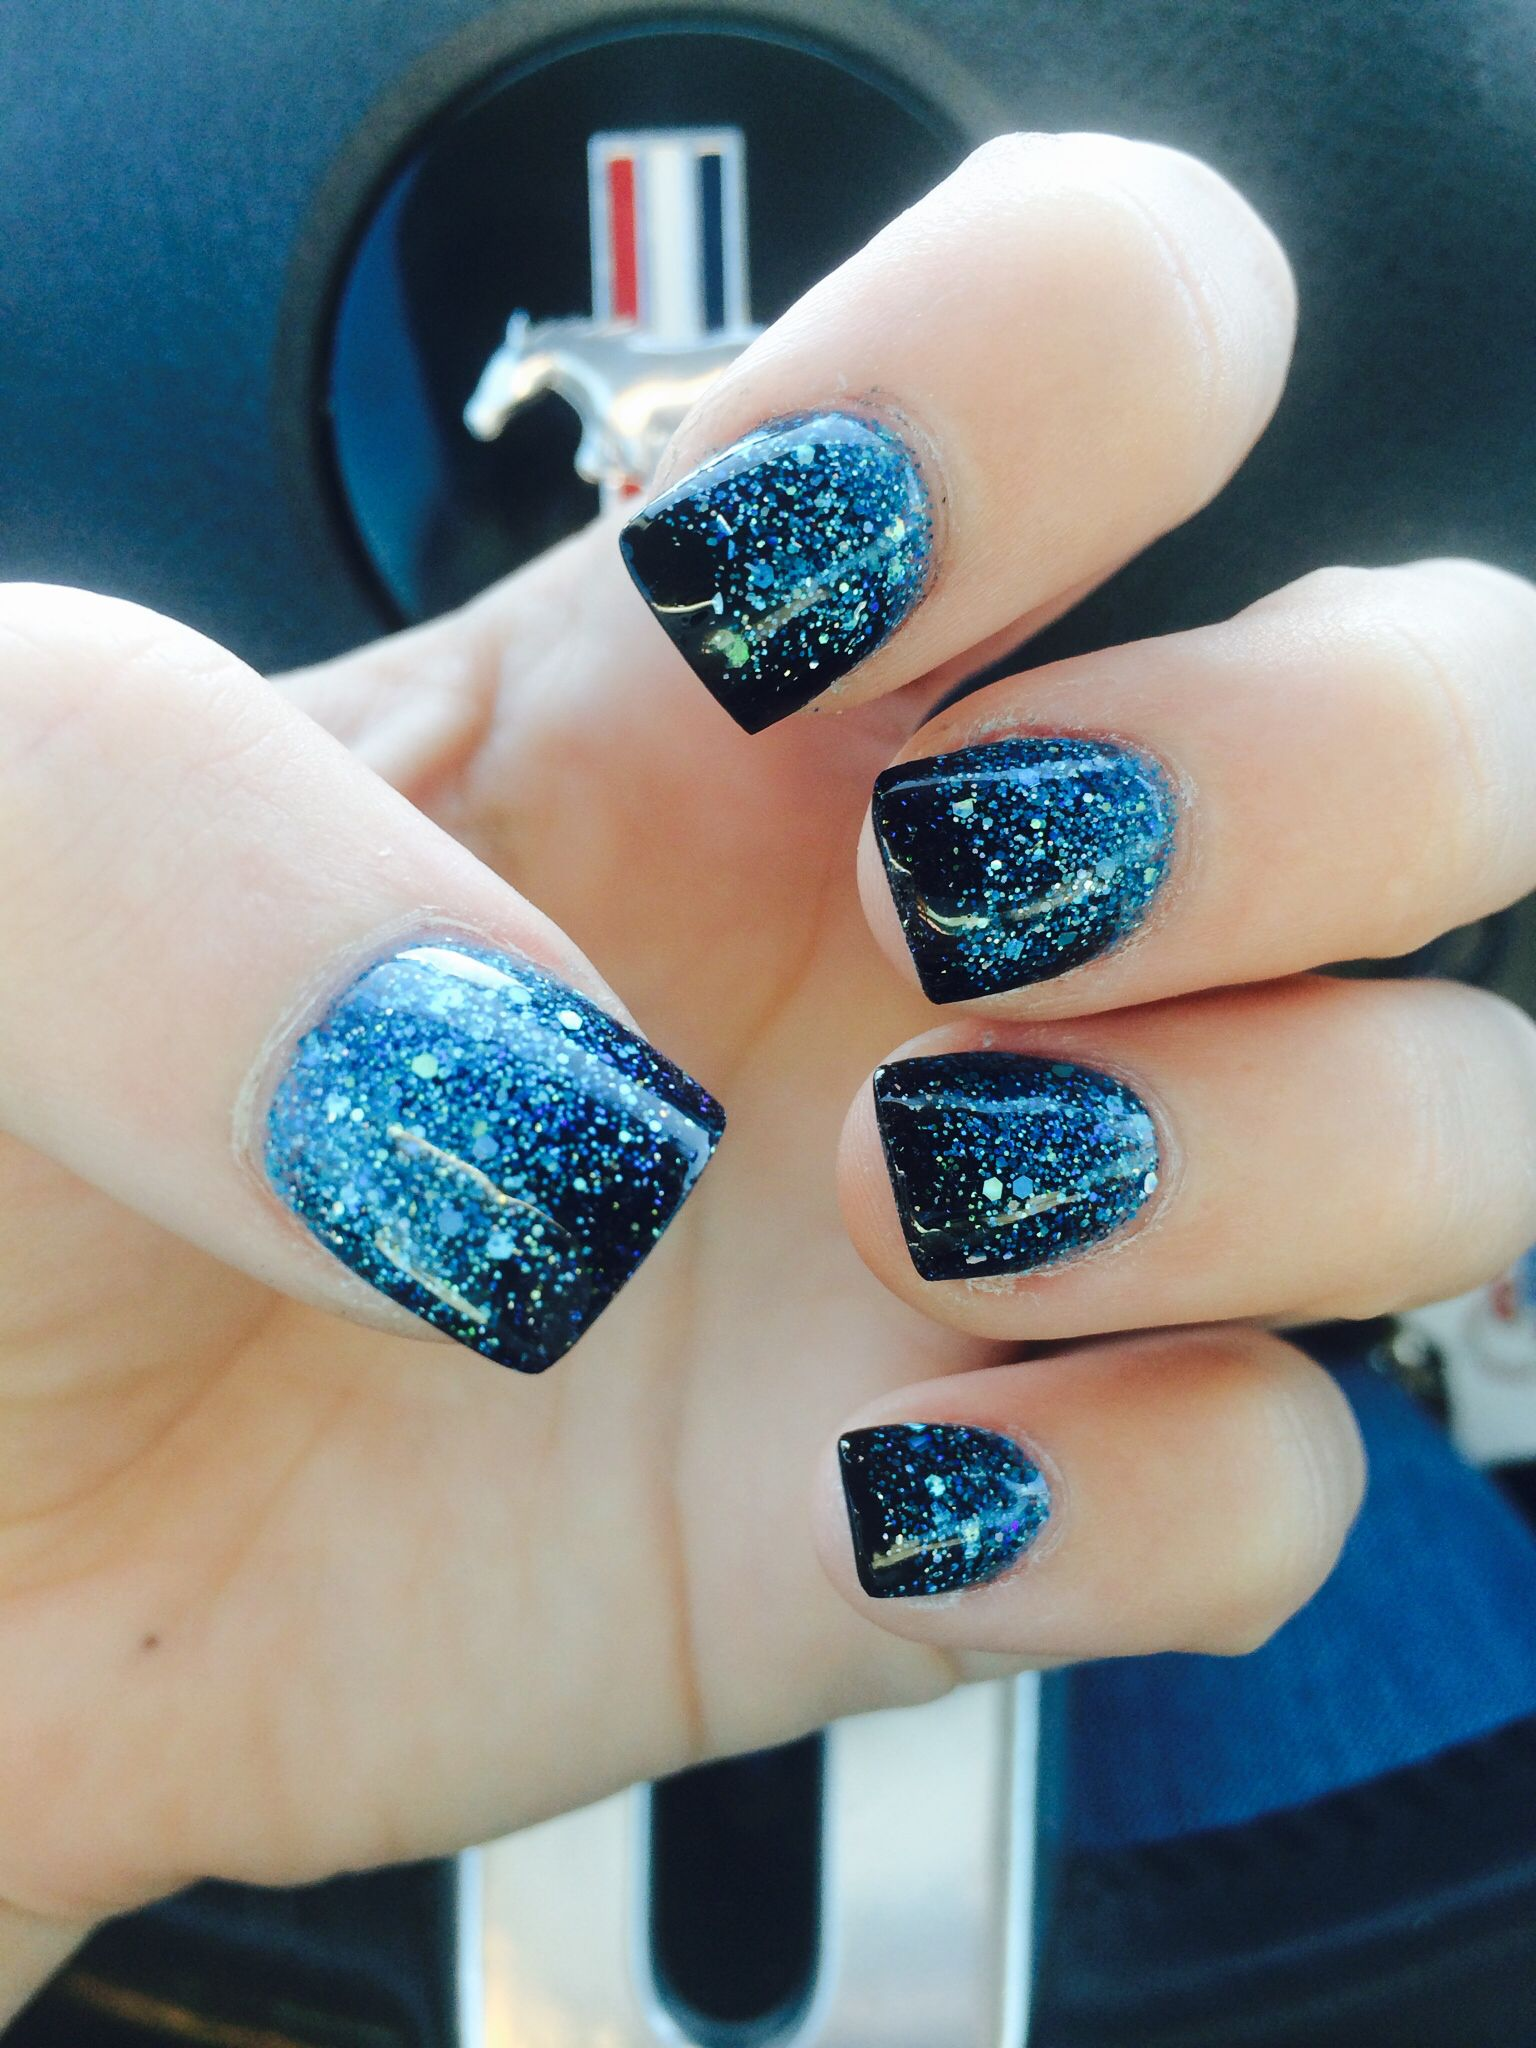 Nails Mylar black blue glitter | My Style | Pinterest | Blue glitter ...